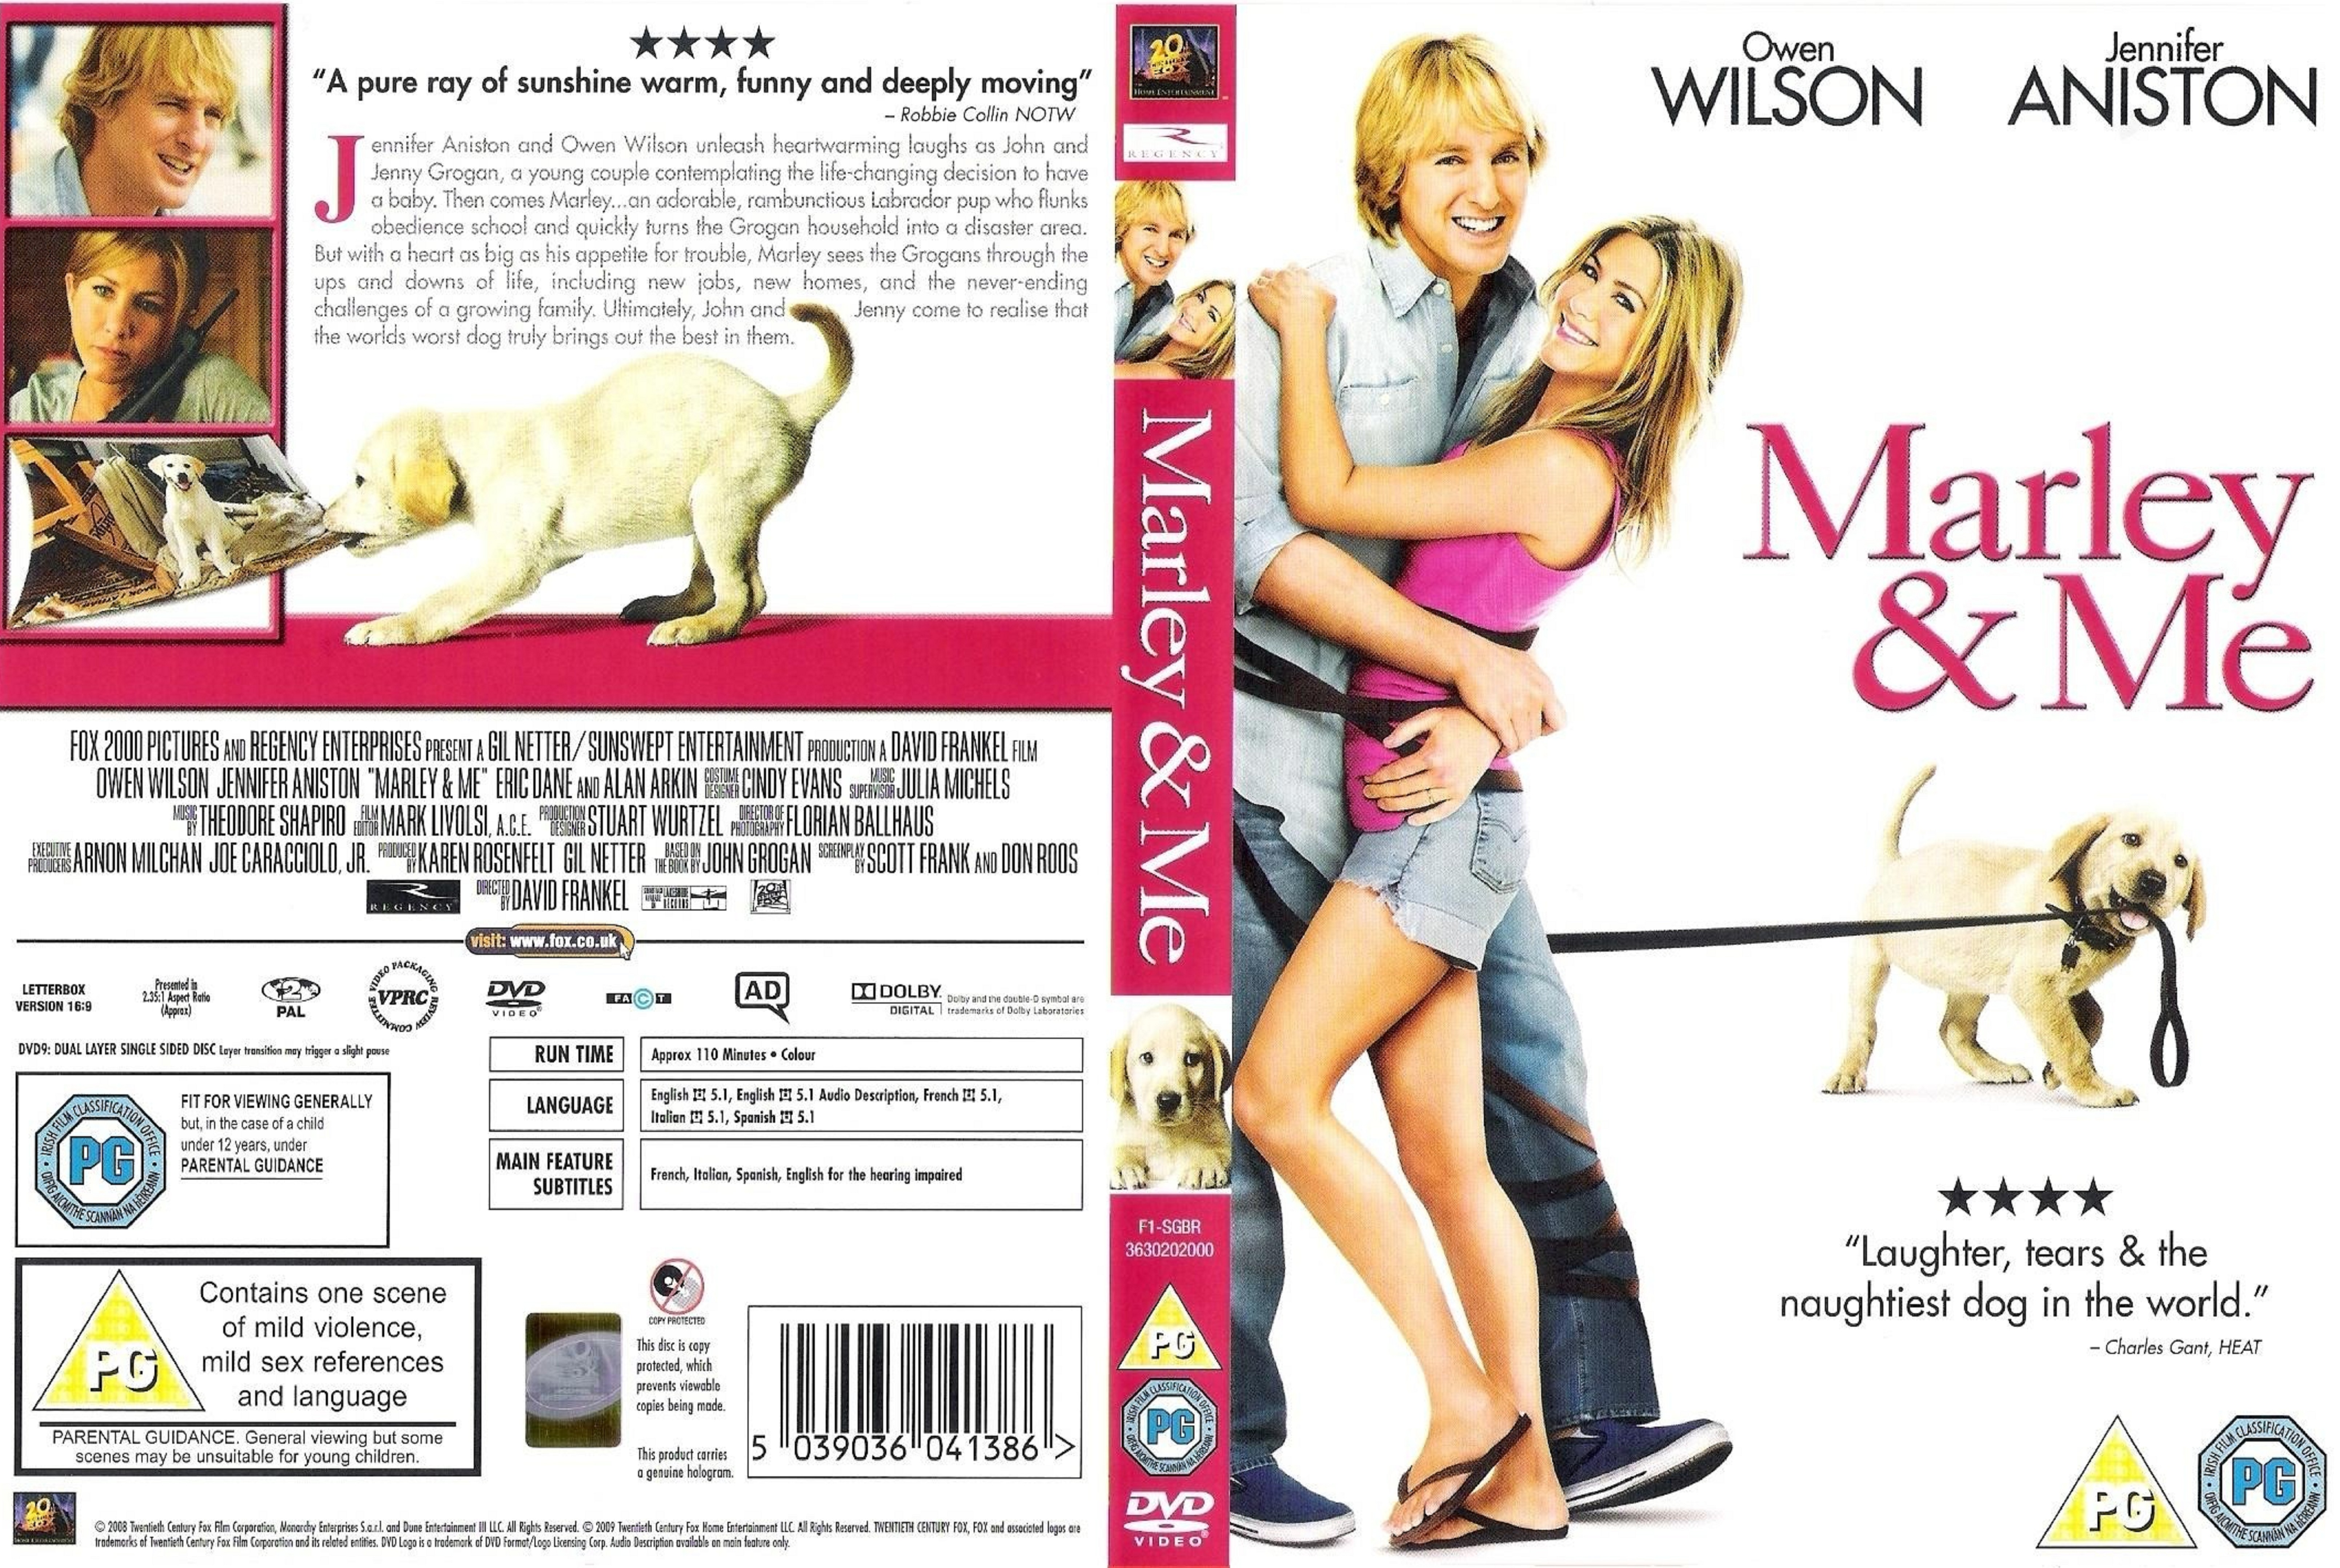 Covers Box Sk Marley And Me 2008 High Quality Dvd Blueray Movie